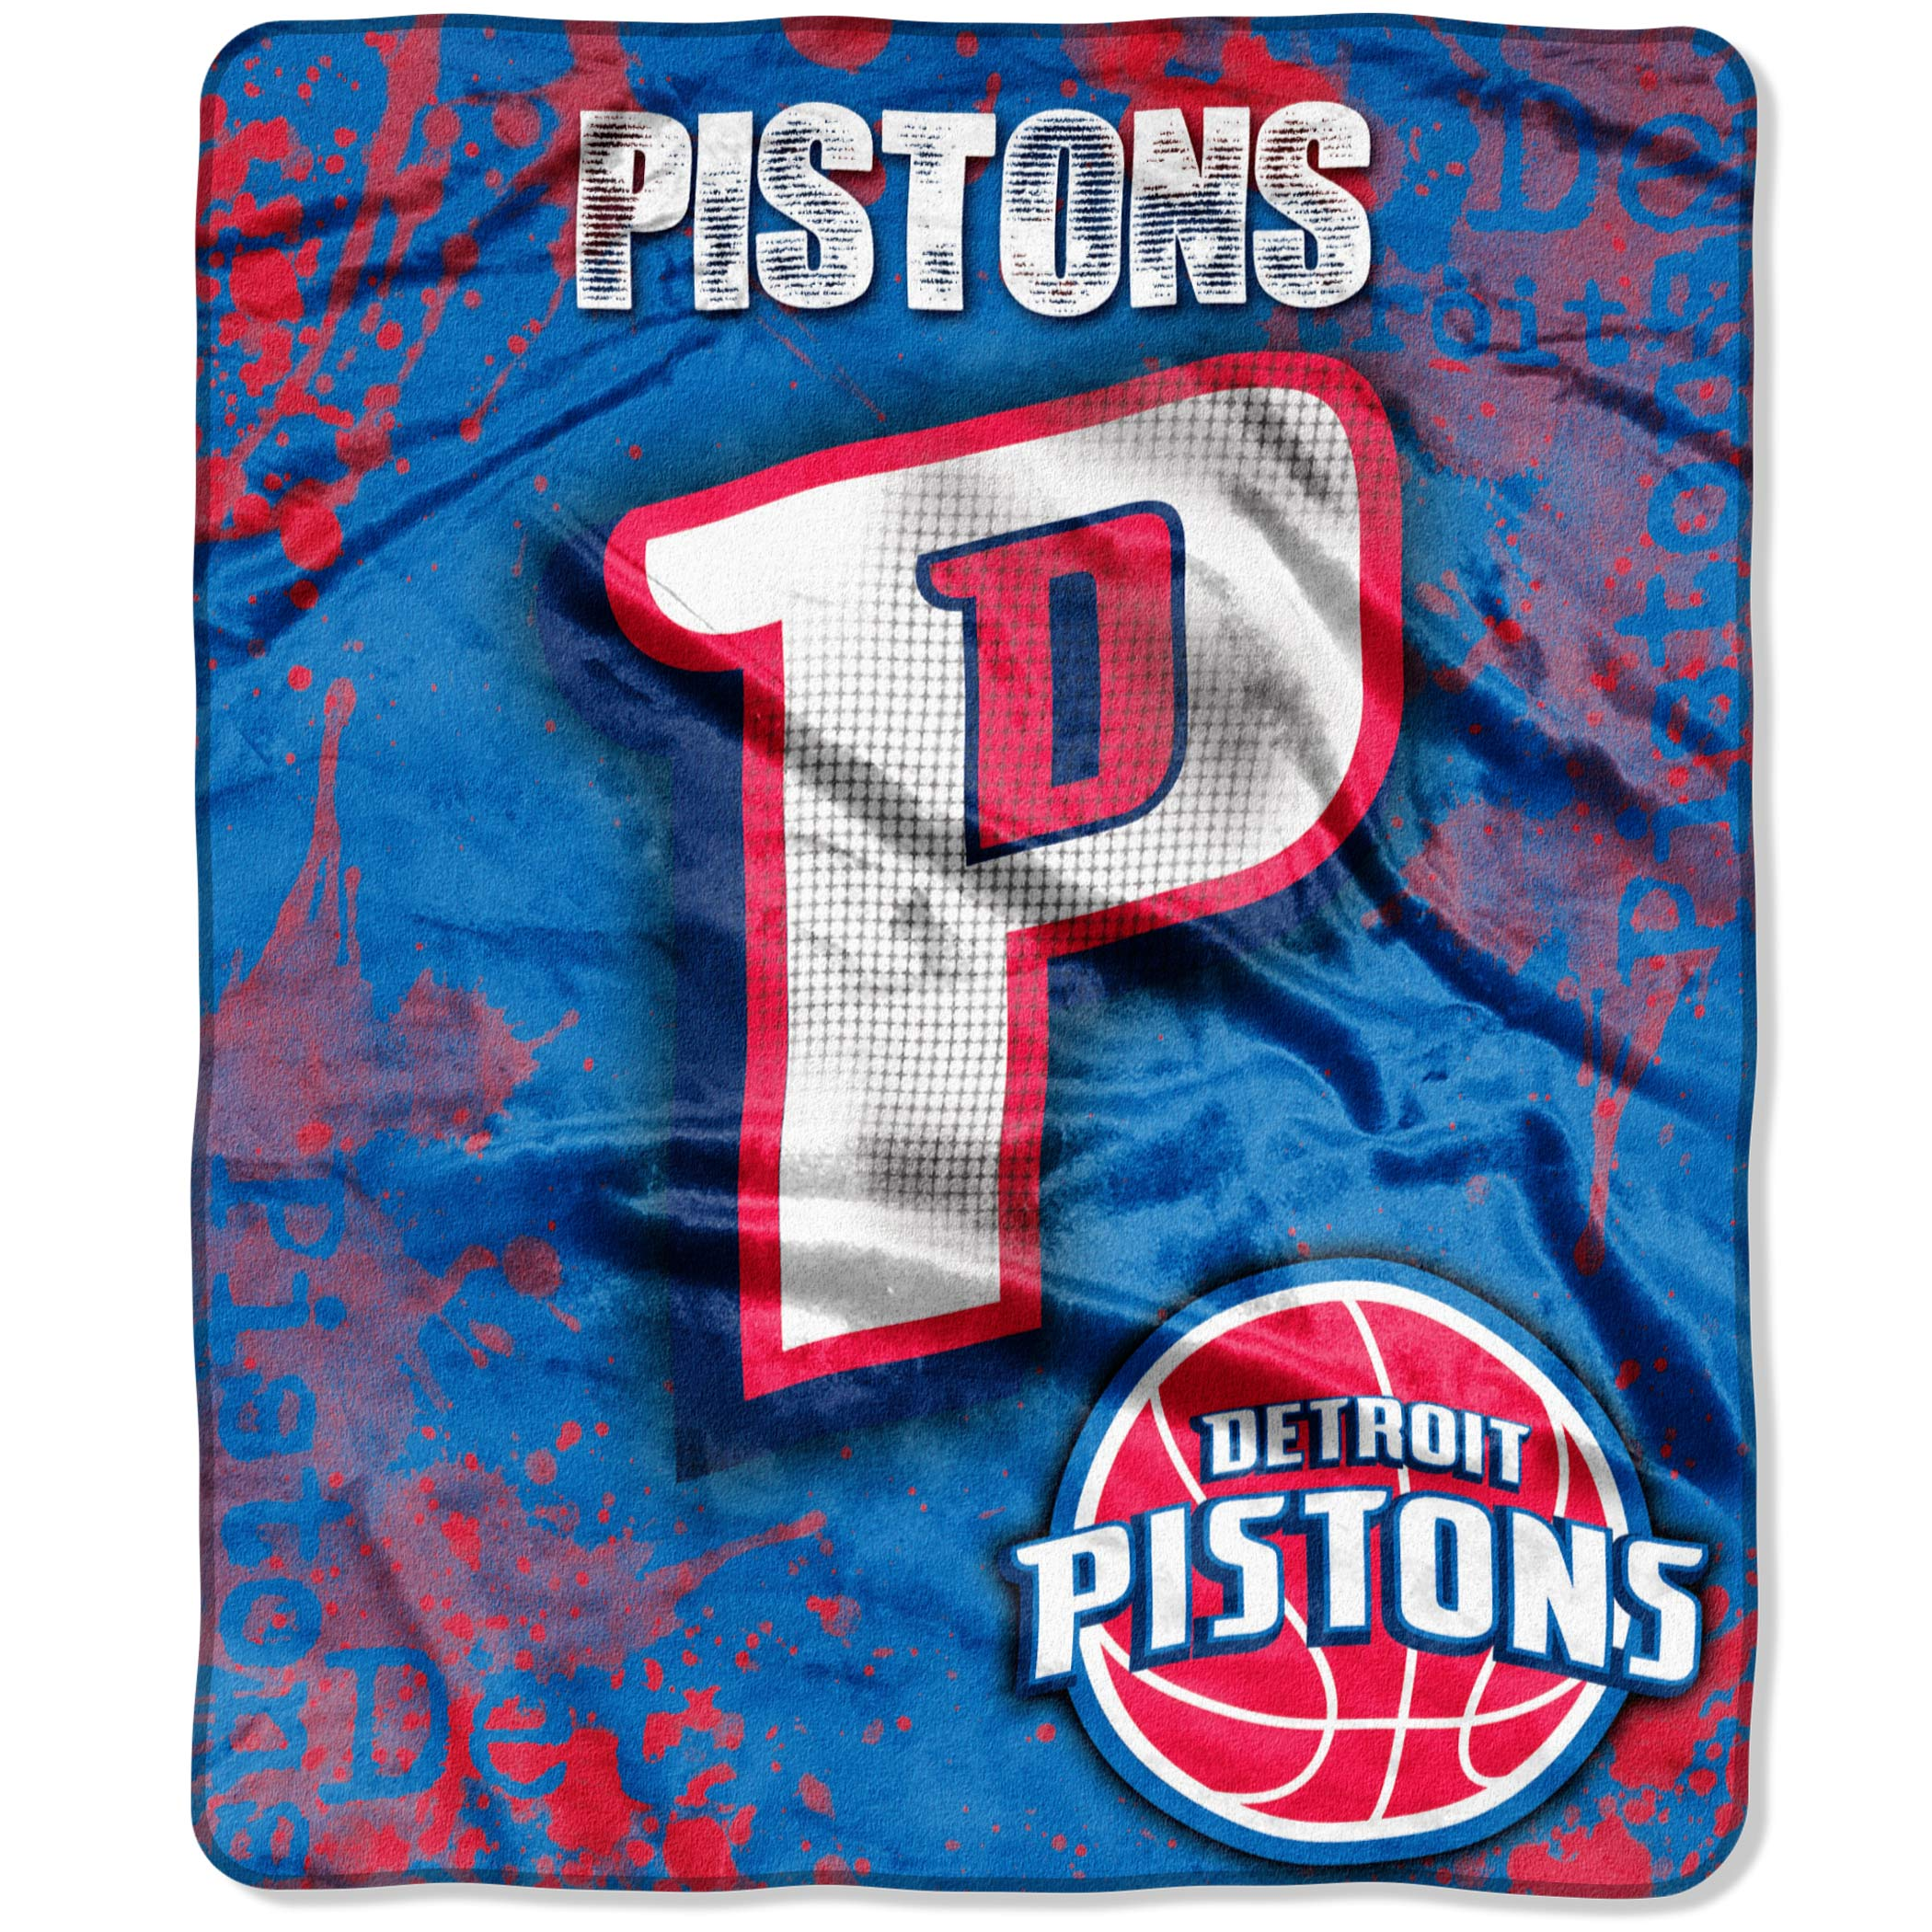 "Detroit Pistons The Northwest Company 50"" x 60"" Dropdown Plush Blanket - No Size"